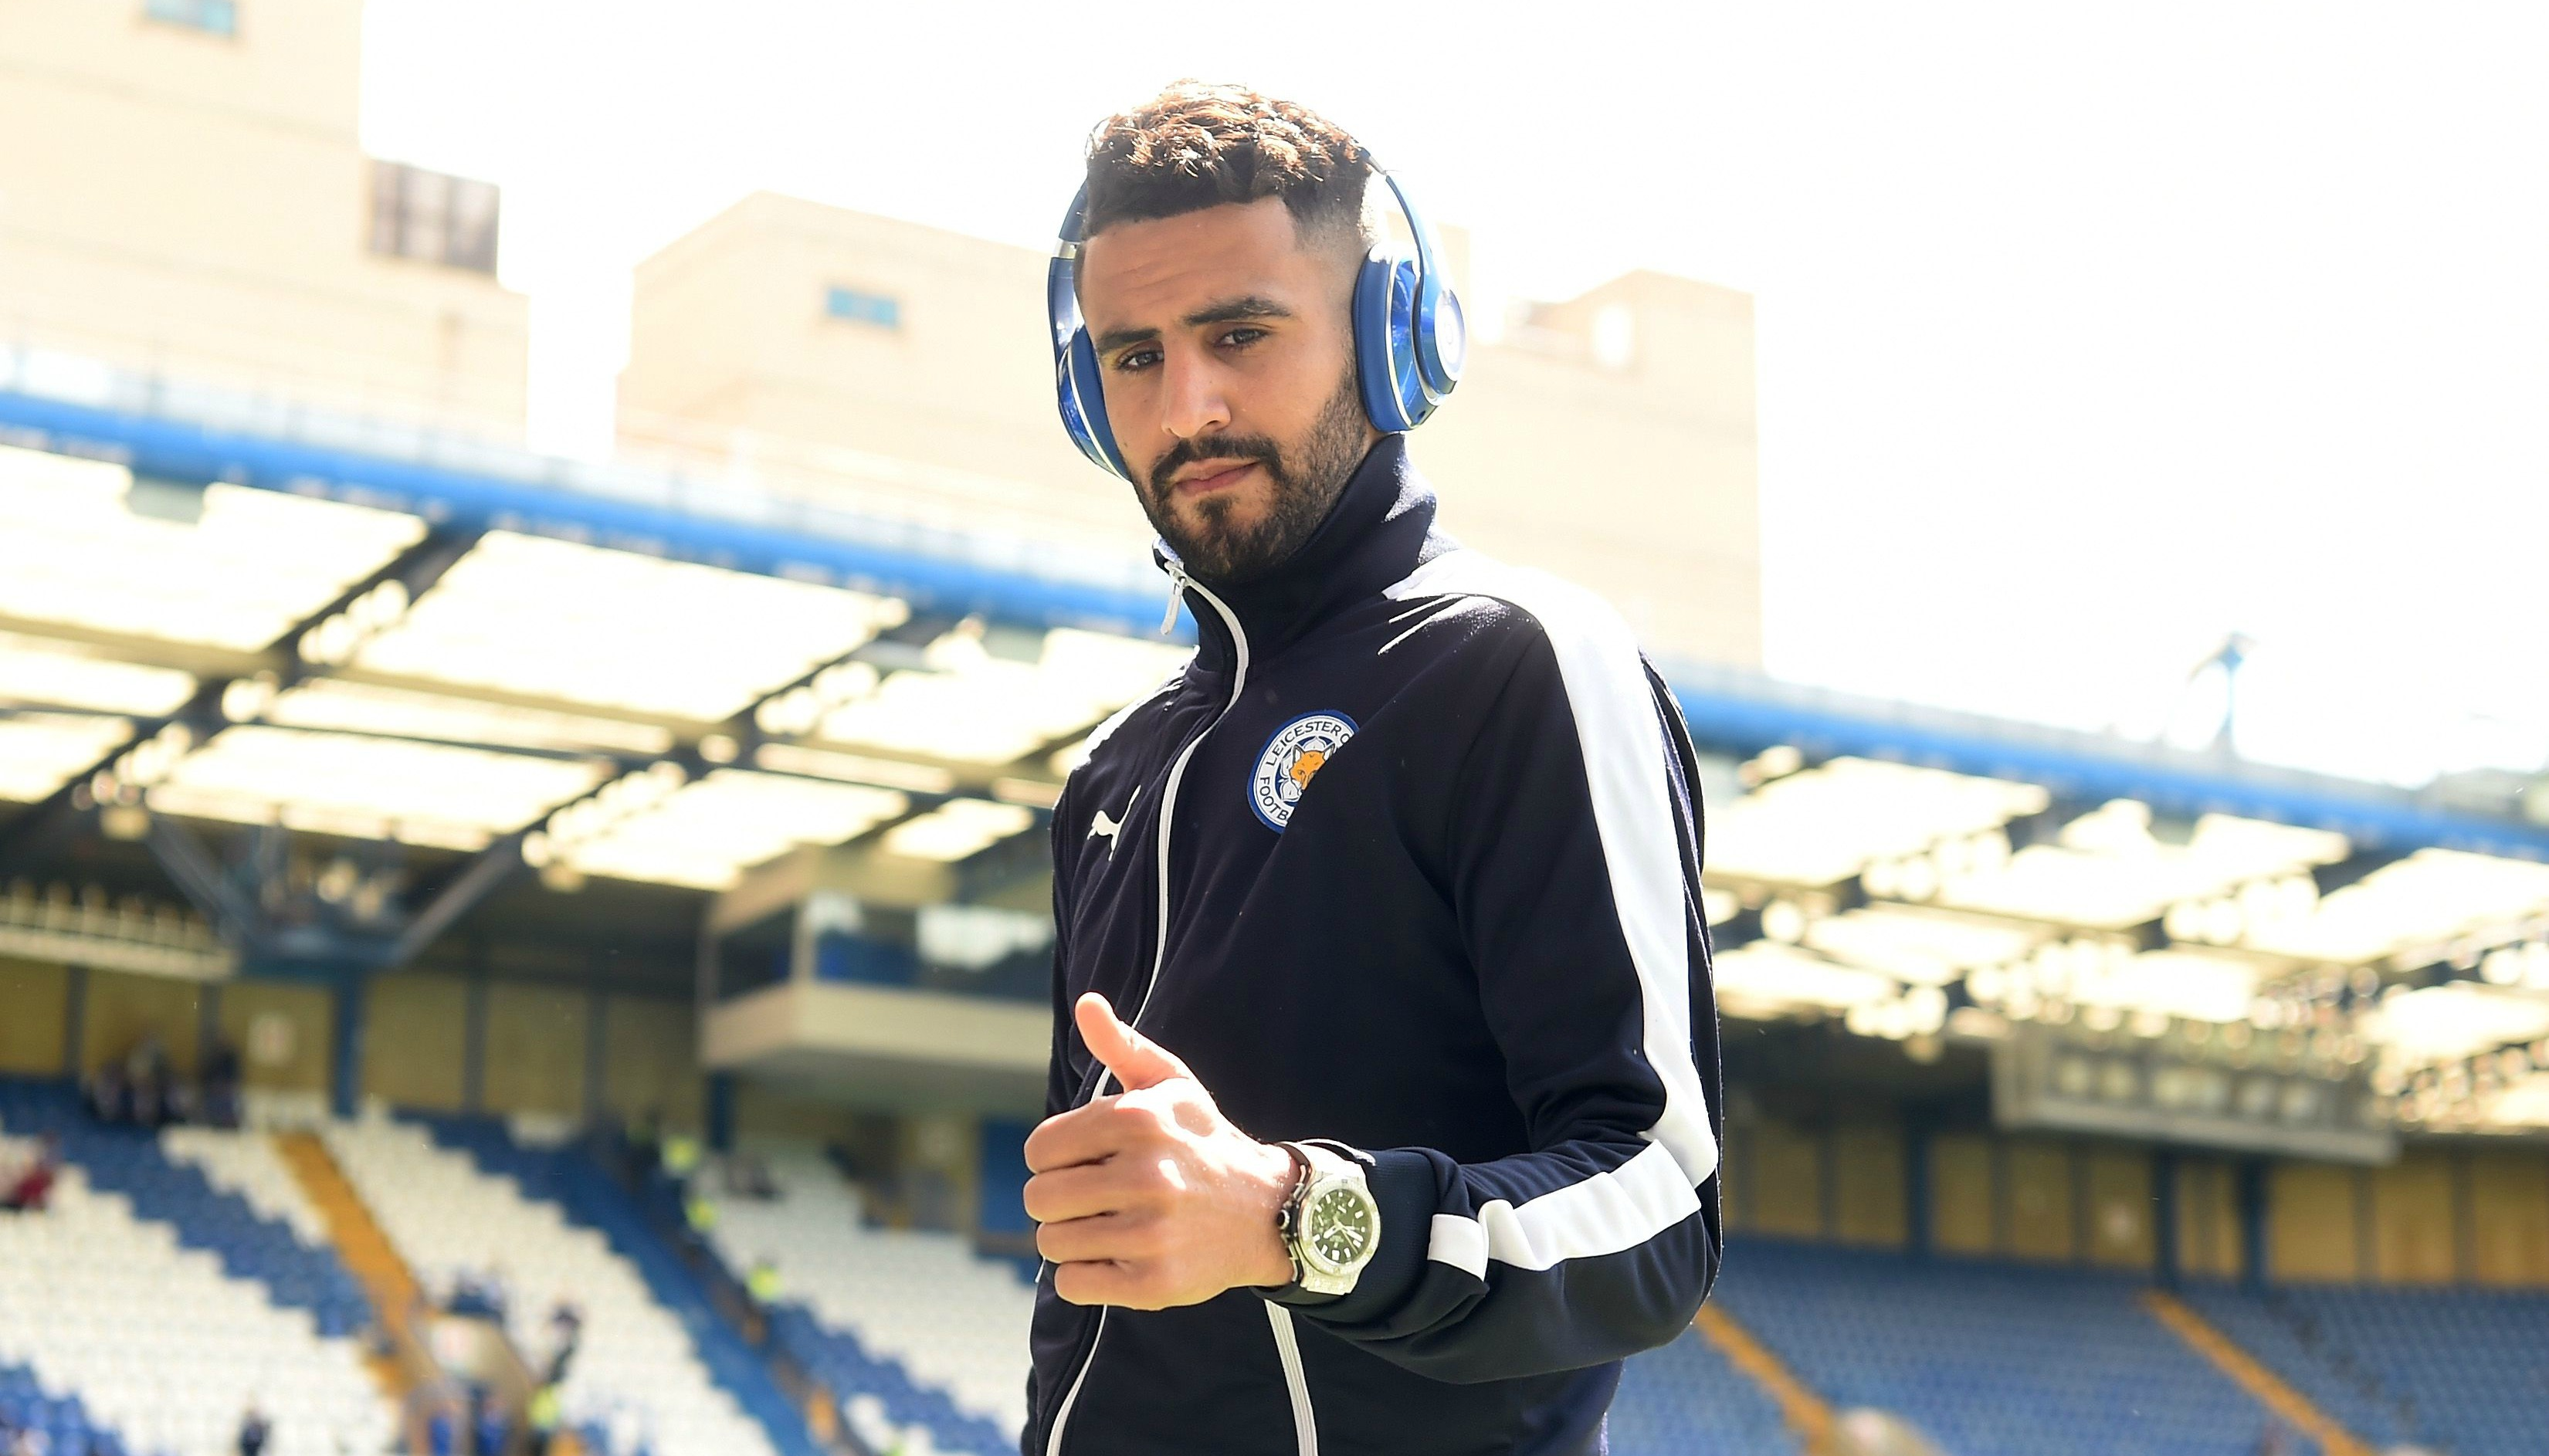 Chelsea planning move for Leicester City star and Arsenal transfer target Riyad Mahrez